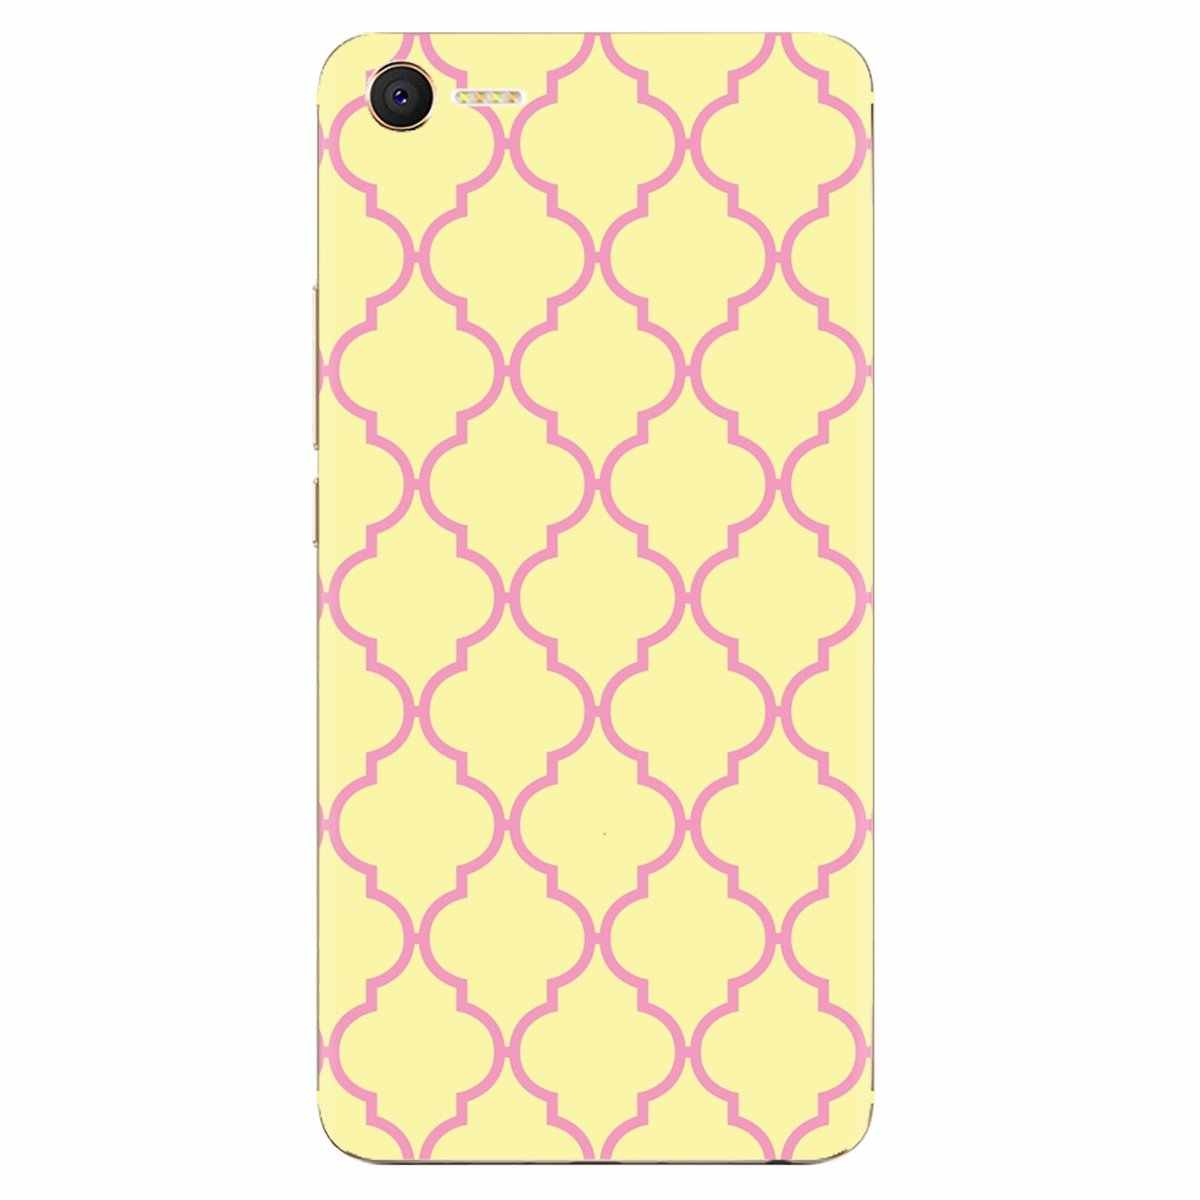 Pink And Yellow Wallpaper For Samsung Galaxy Note 2 3 4 5 8 9 S2 S3 S4 S5 Mini S6 S7 Edge S8 S9 Plus Designs Silicone Phone Case Phone Case Covers Aliexpress